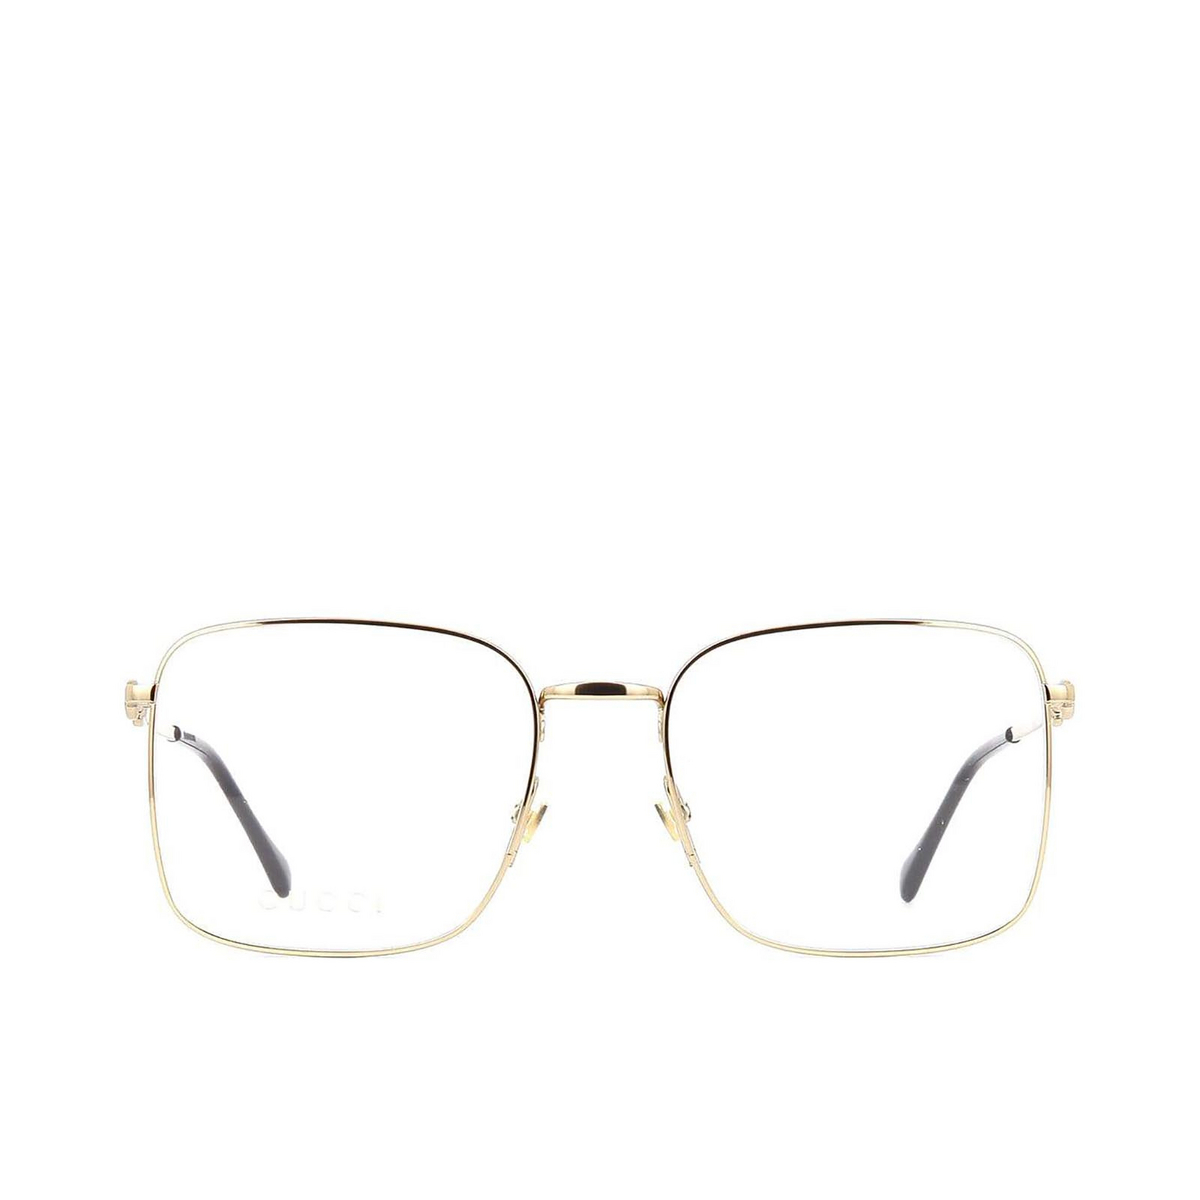 Gucci® Square Eyeglasses: GG0951O color Gold 002 - front view.